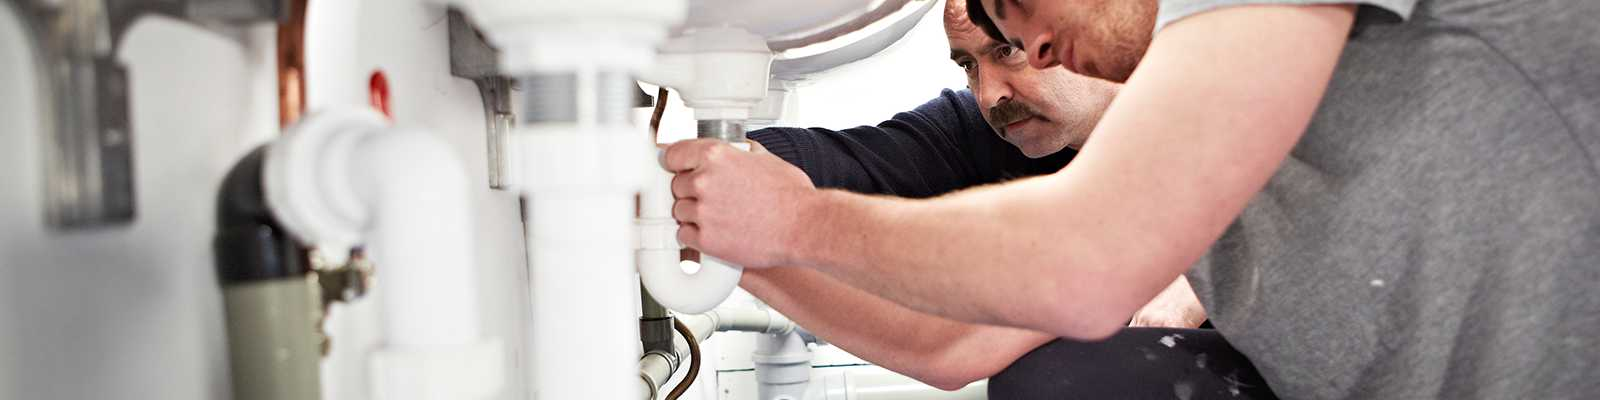 City & Guilds Level 2 Plumbing Course